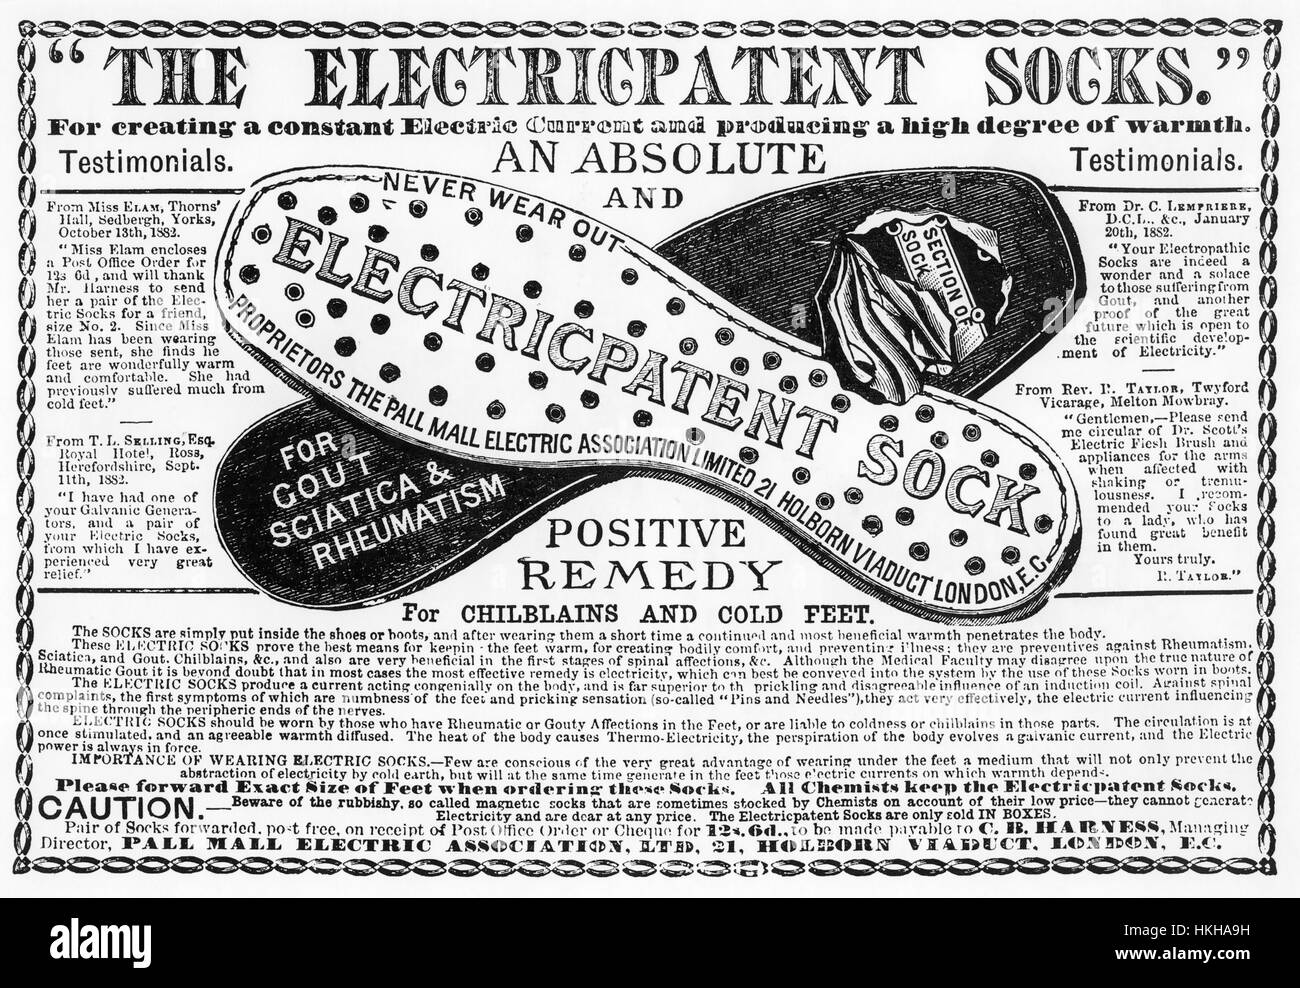 ELECTRICPATENT SOCKS 1884 advert for a a product of the Pall Mall